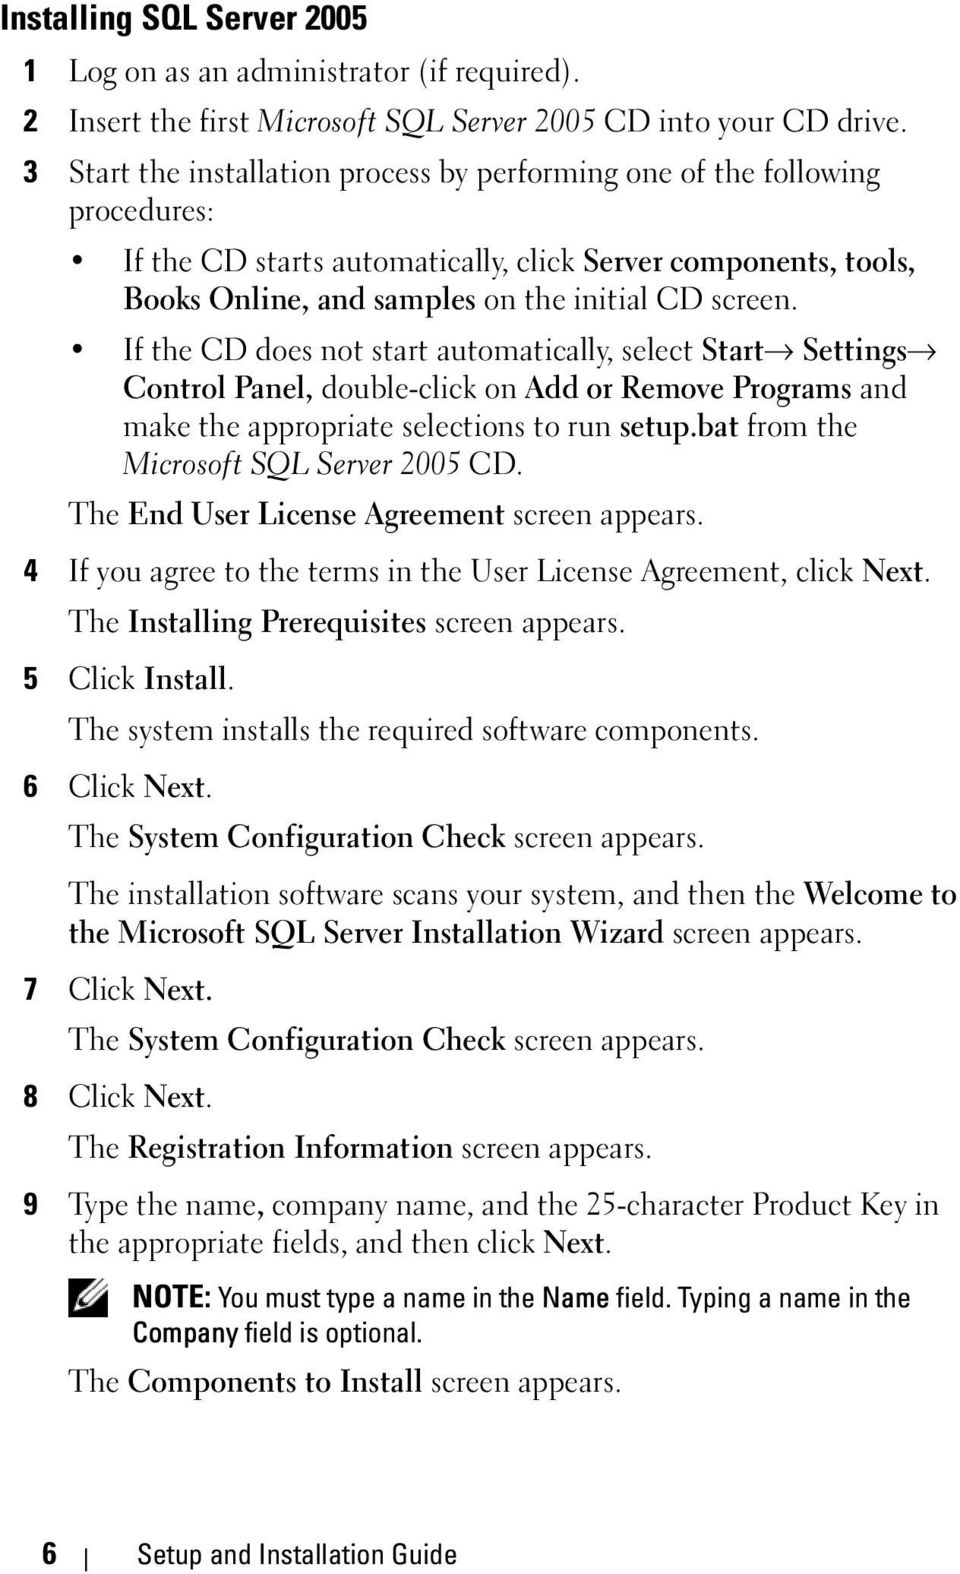 If the CD does not start automatically, select Start Settings Control Panel, double-click on Add or Remove Programs and make the appropriate selections to run setup.